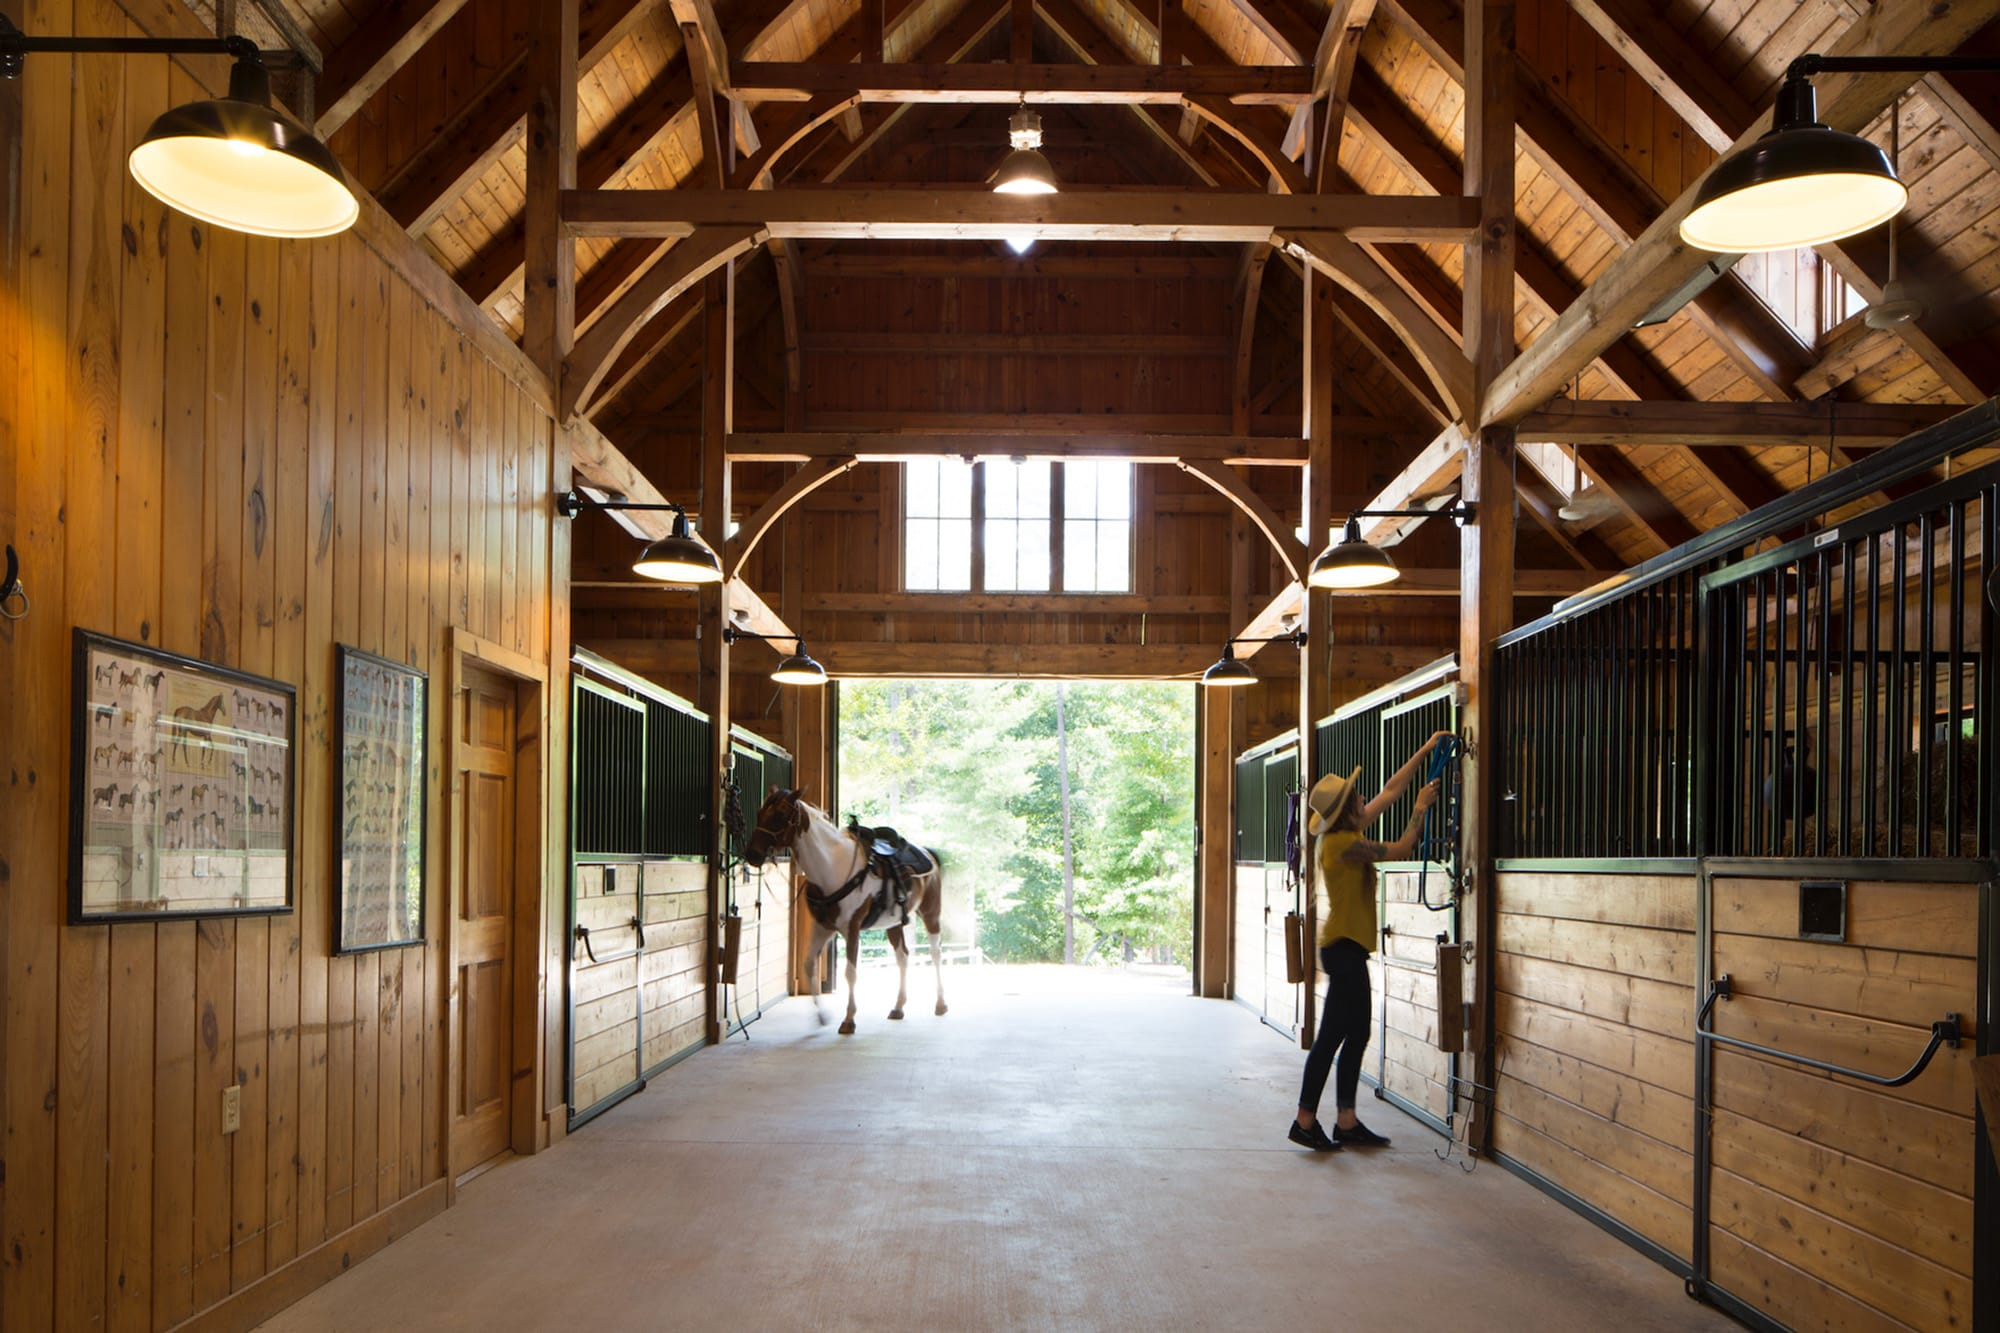 Equestrian Center at The Cliffs at Keowee Vineyards